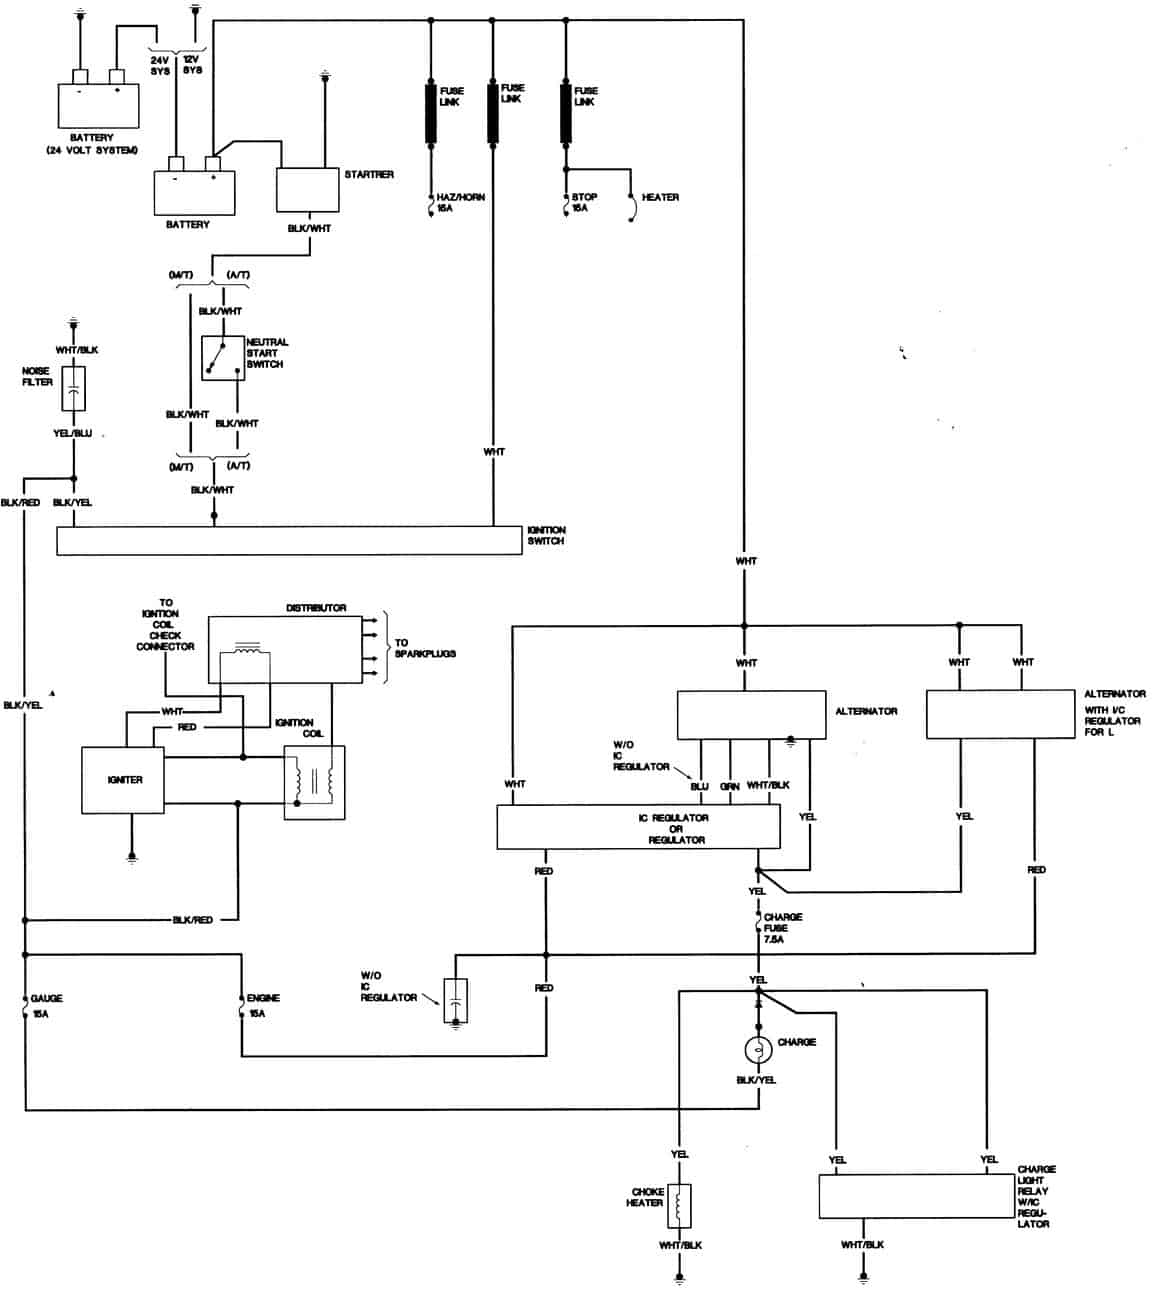 1983 Toyota Pick up Charging system wiring diagram